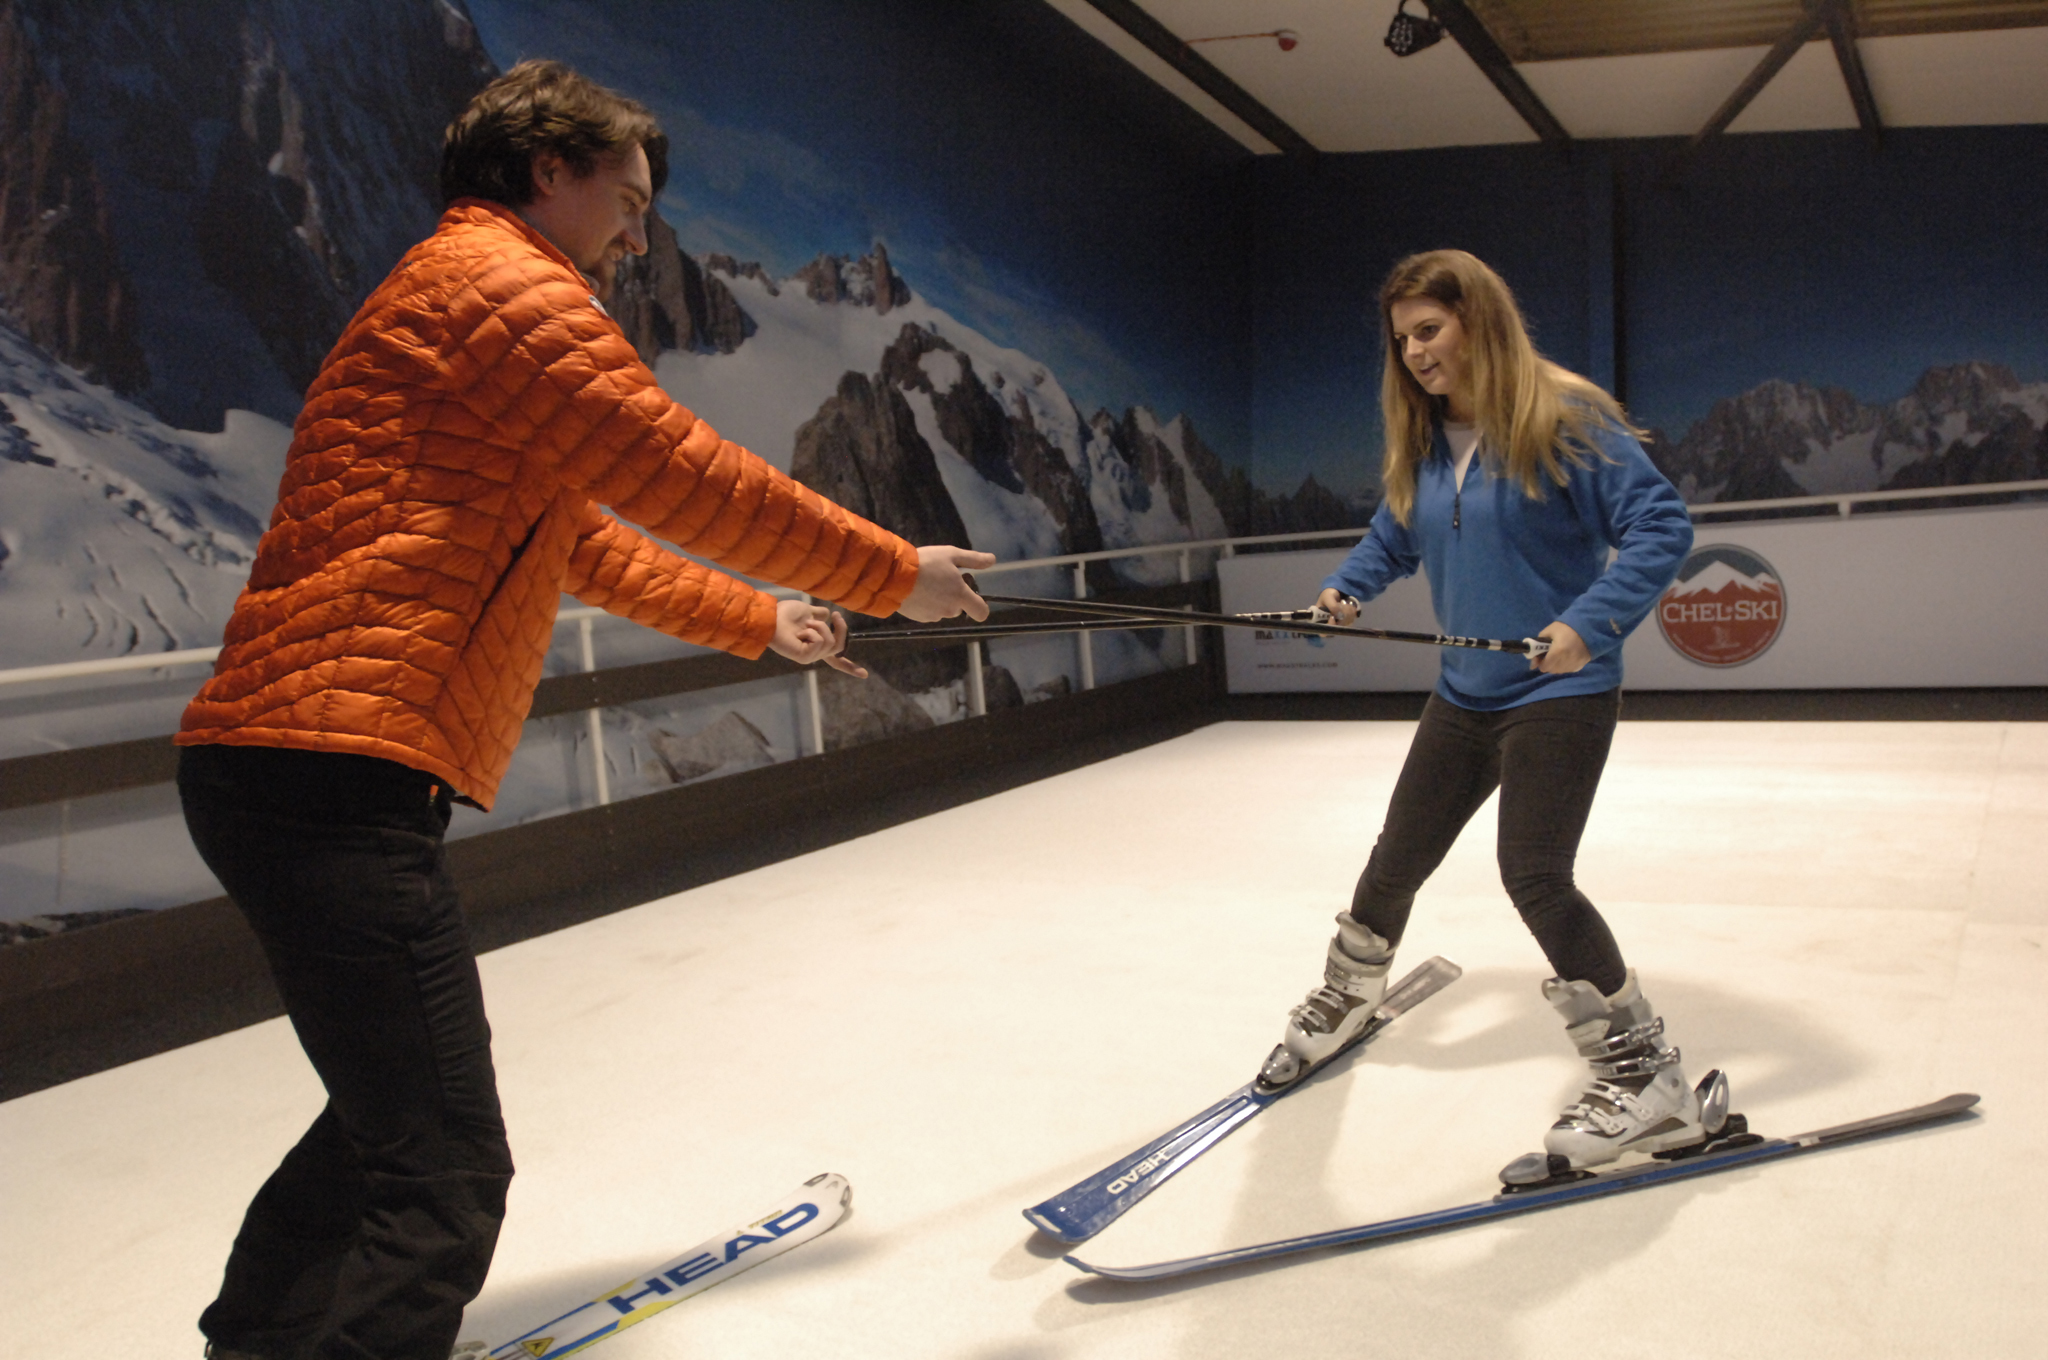 Learn to ski like a pro